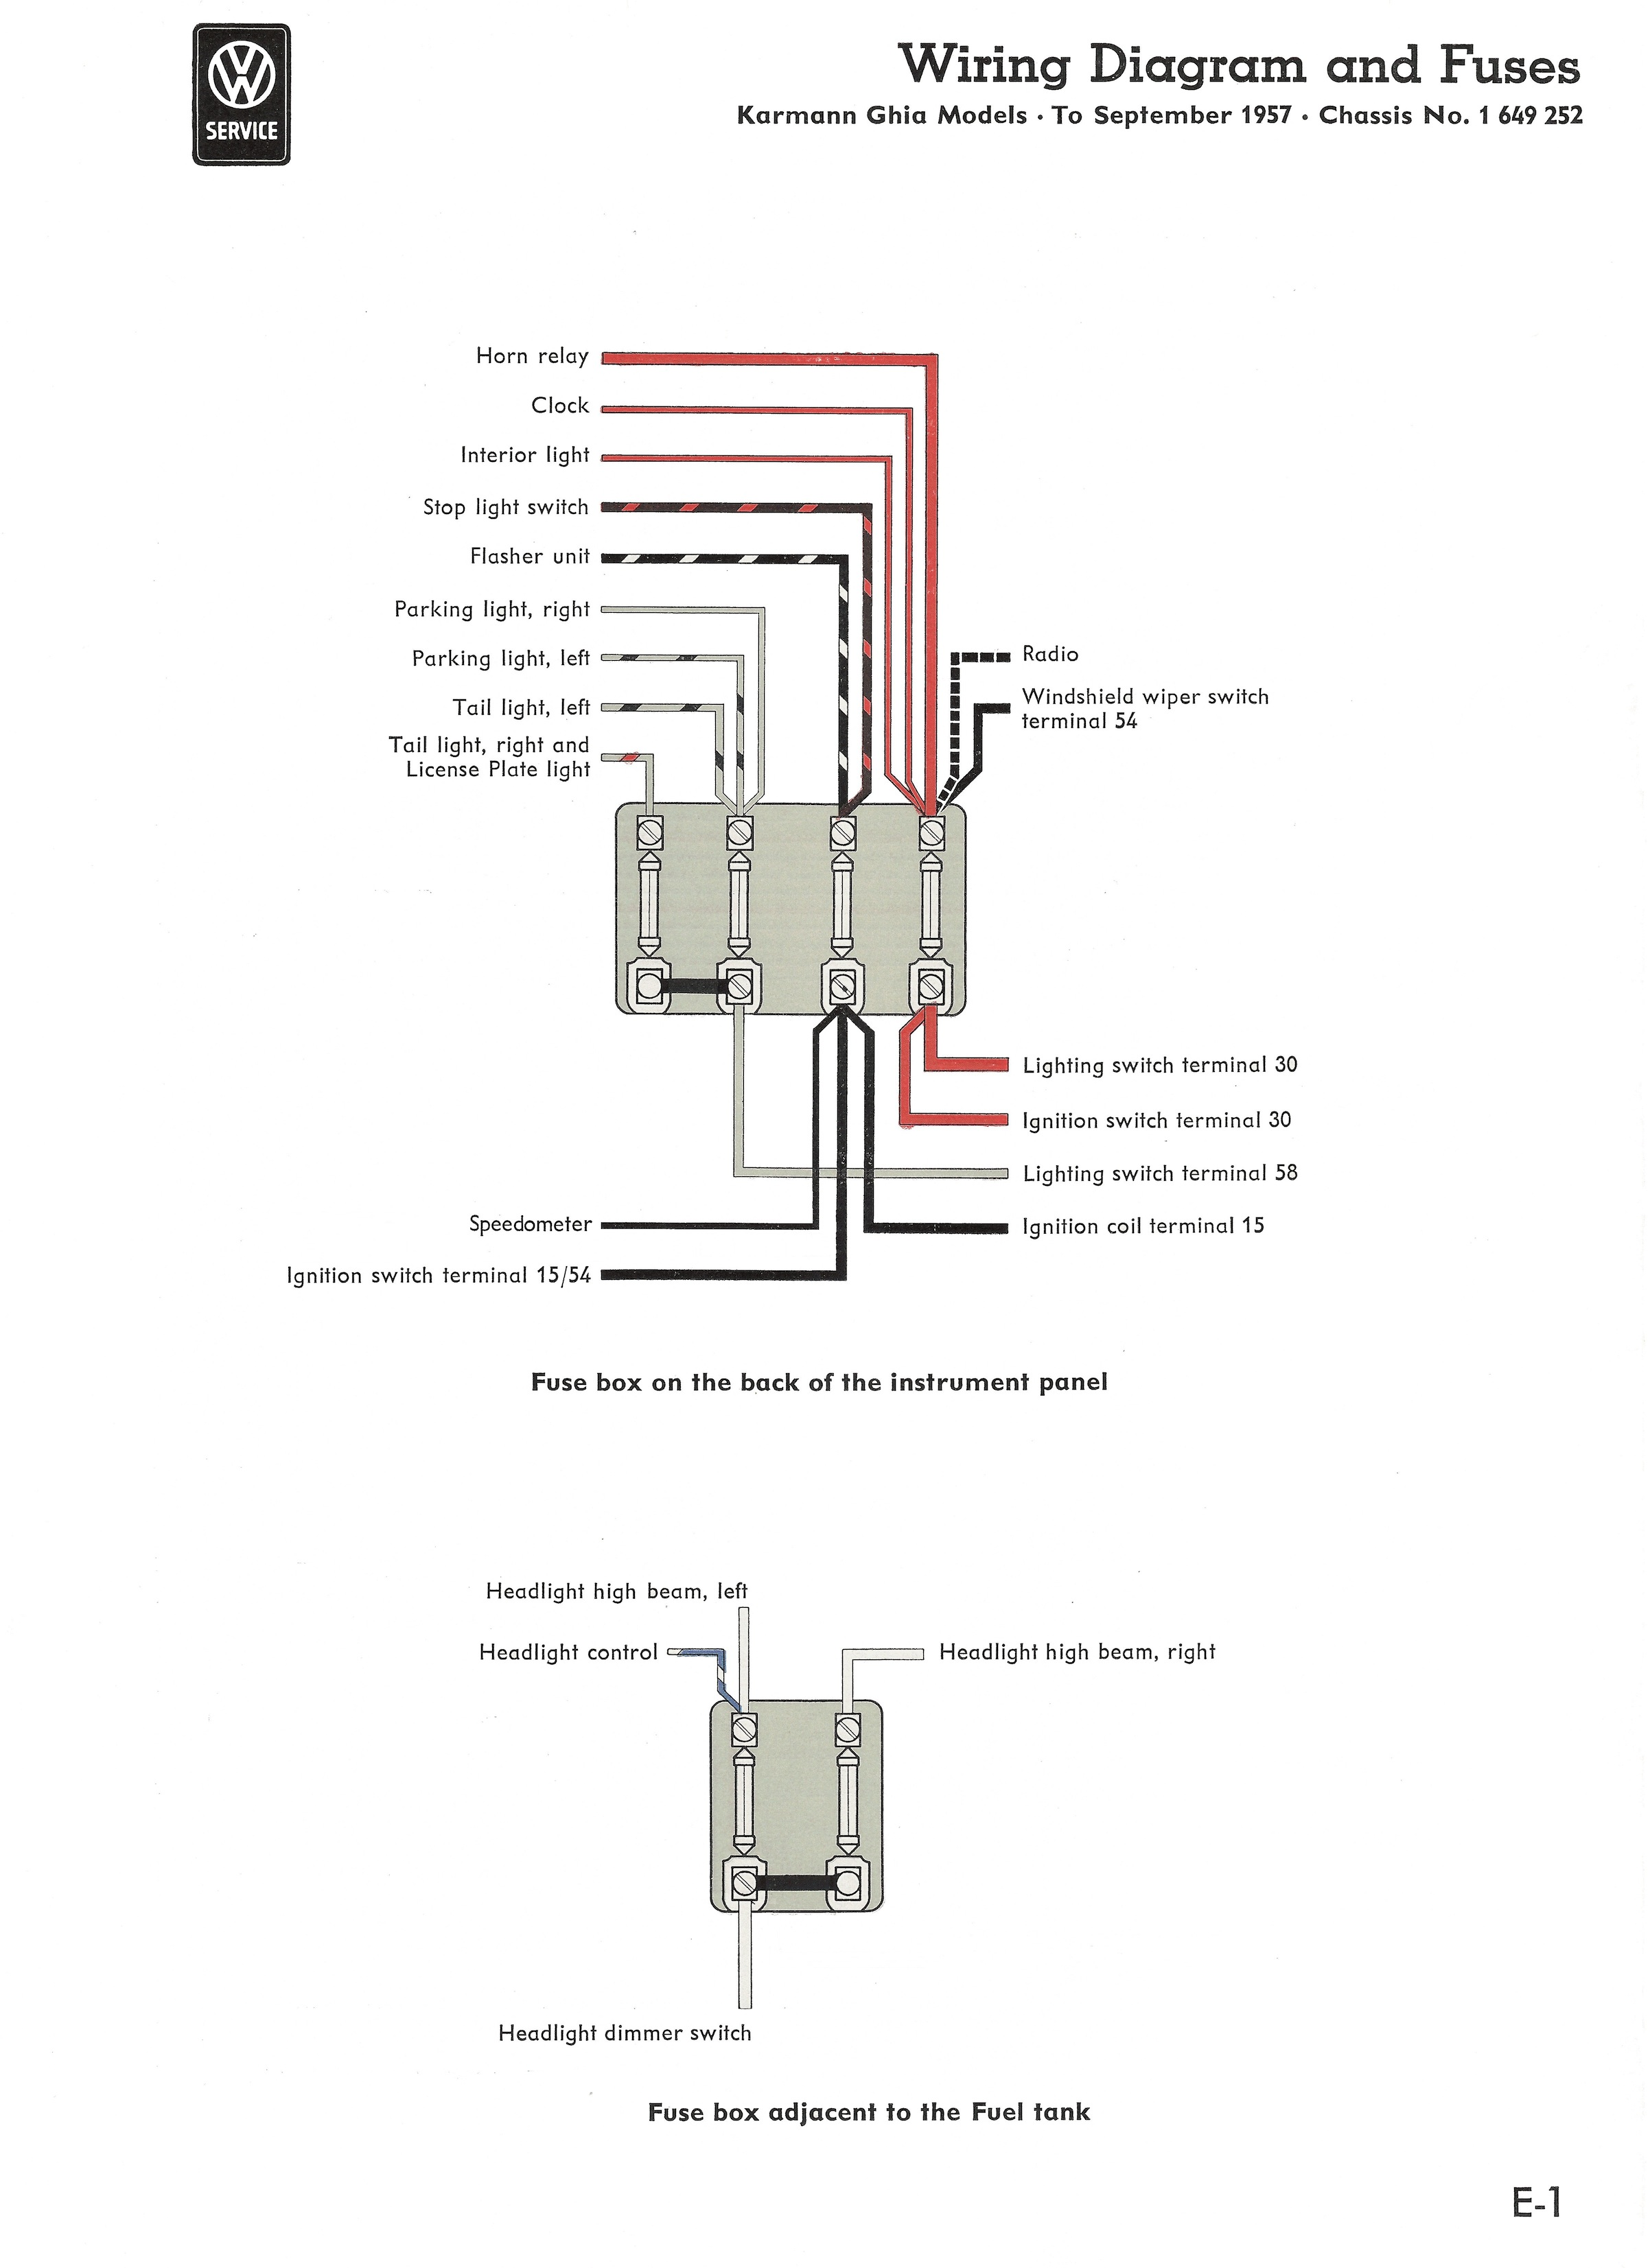 Wiringghia on 1973 Karmann Ghia Wiring Diagram